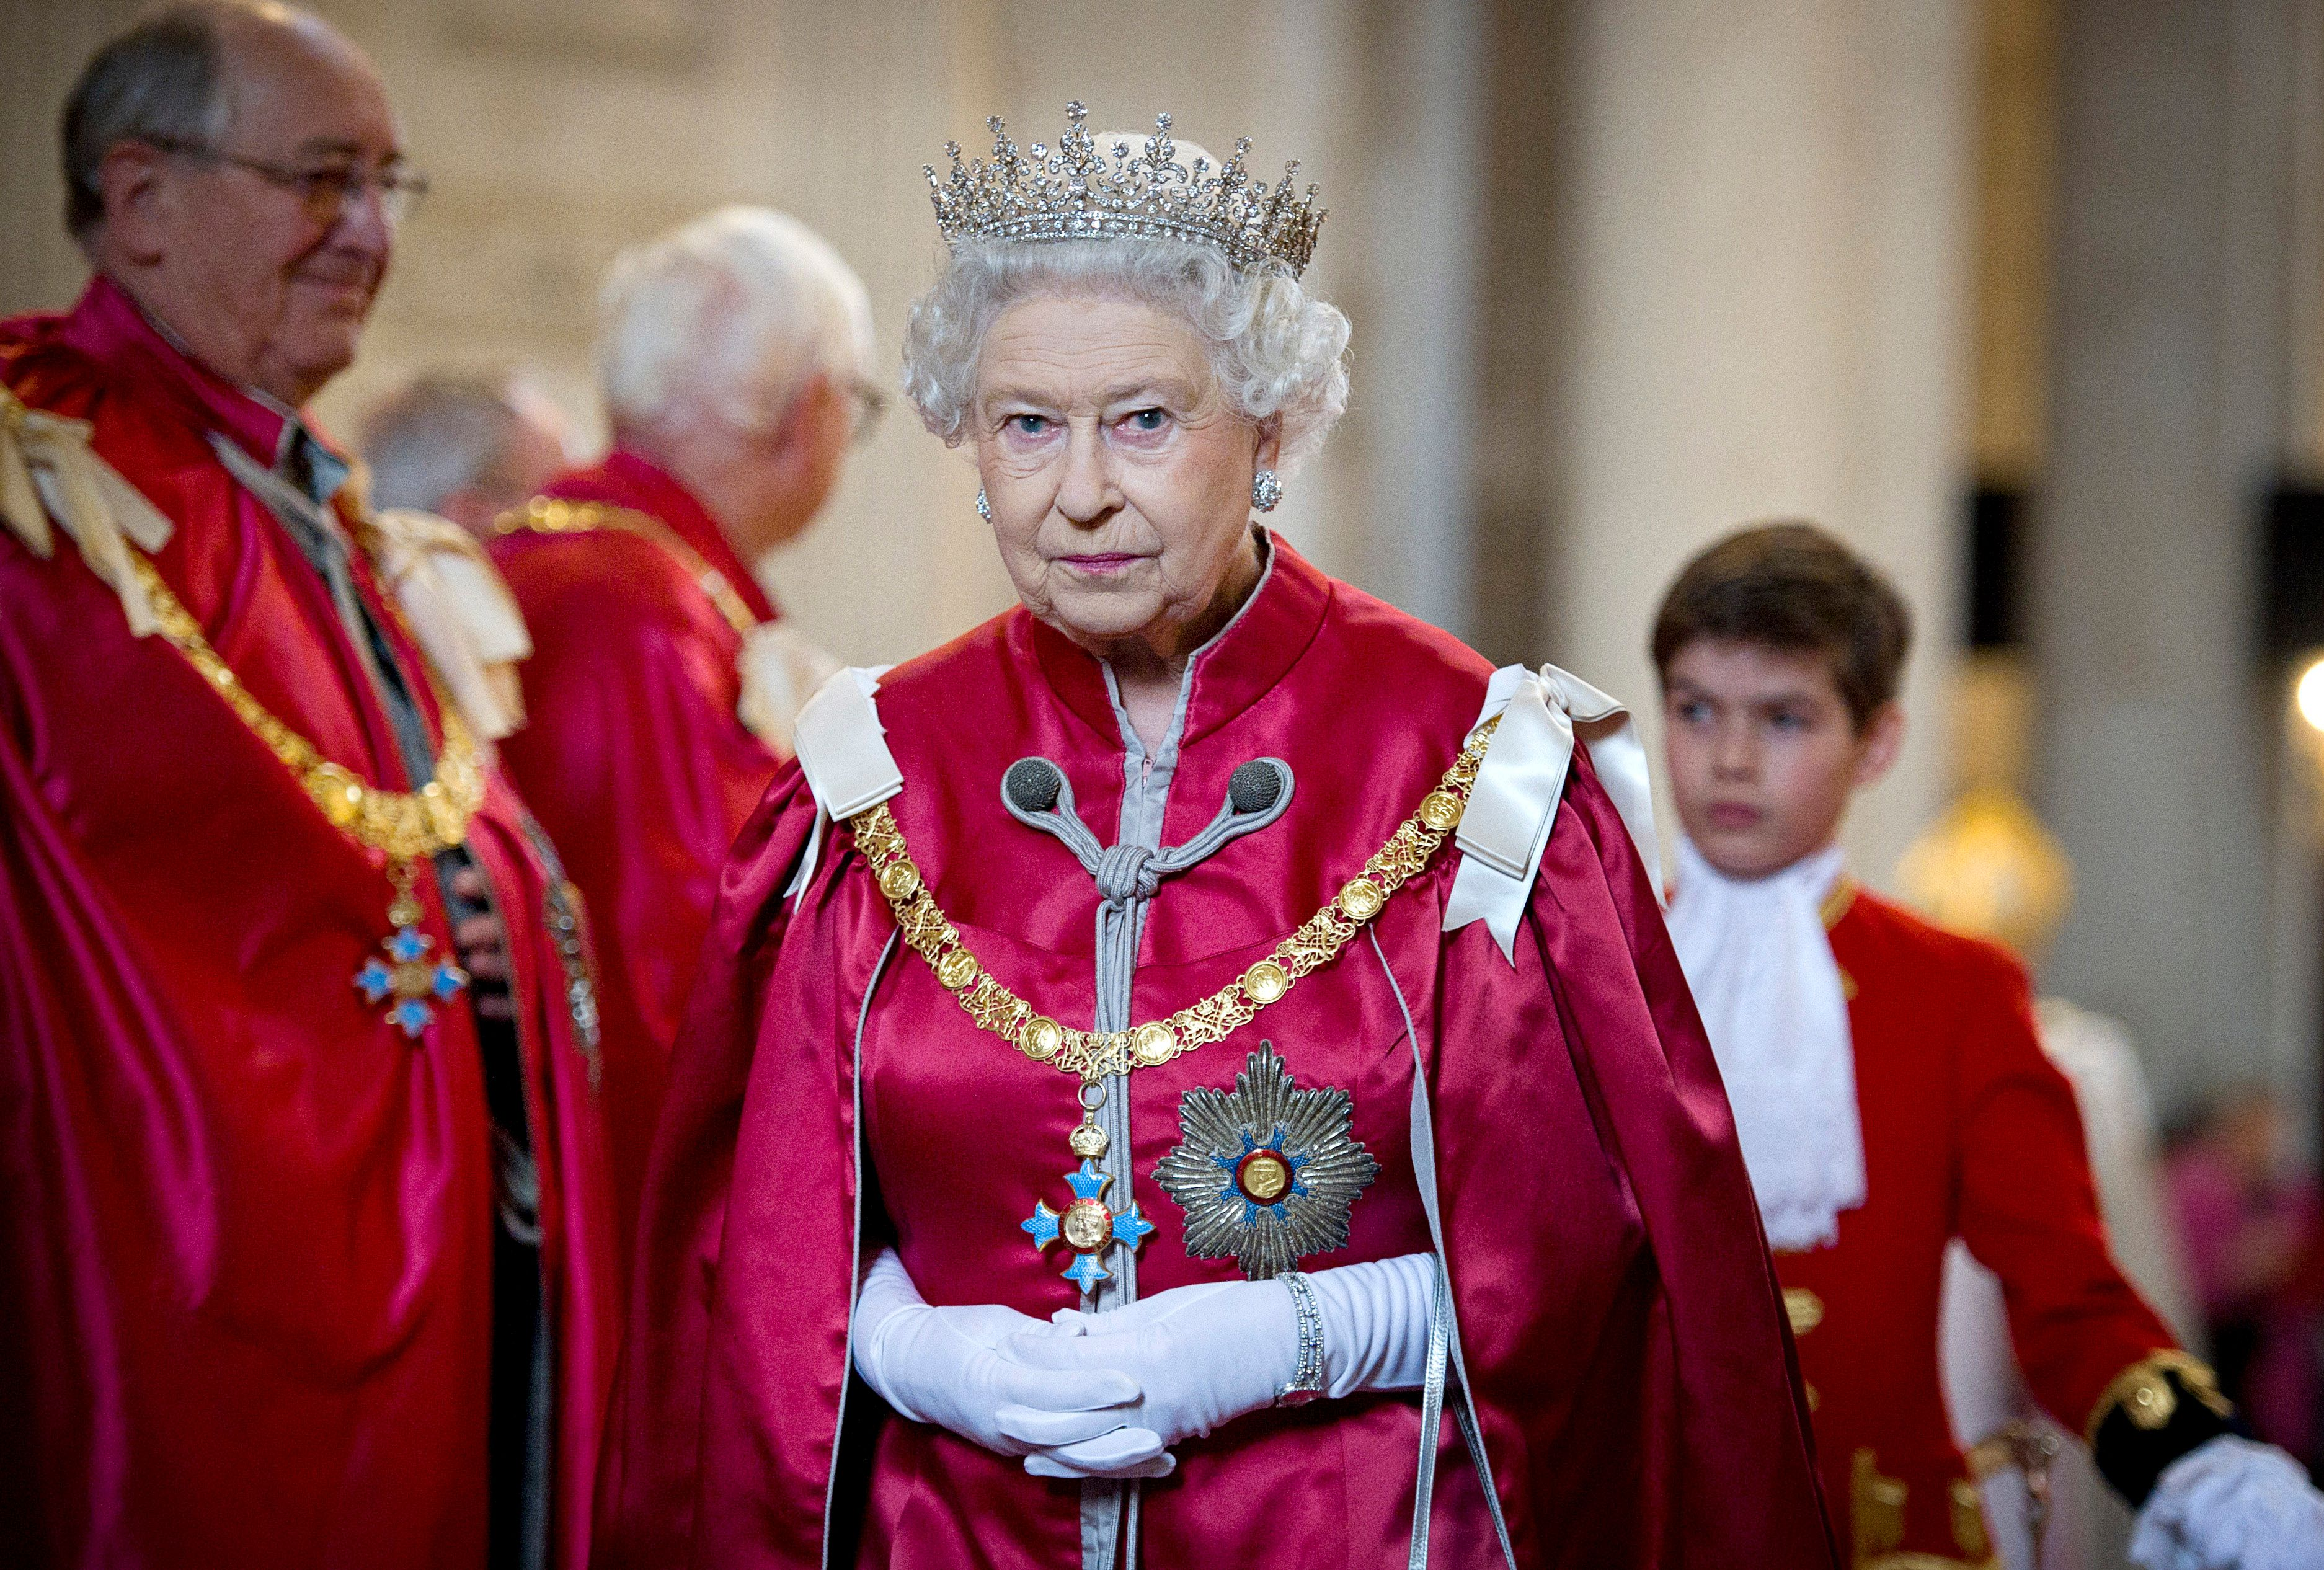 Queen Elizabeth stands clasping her hands wearing all red